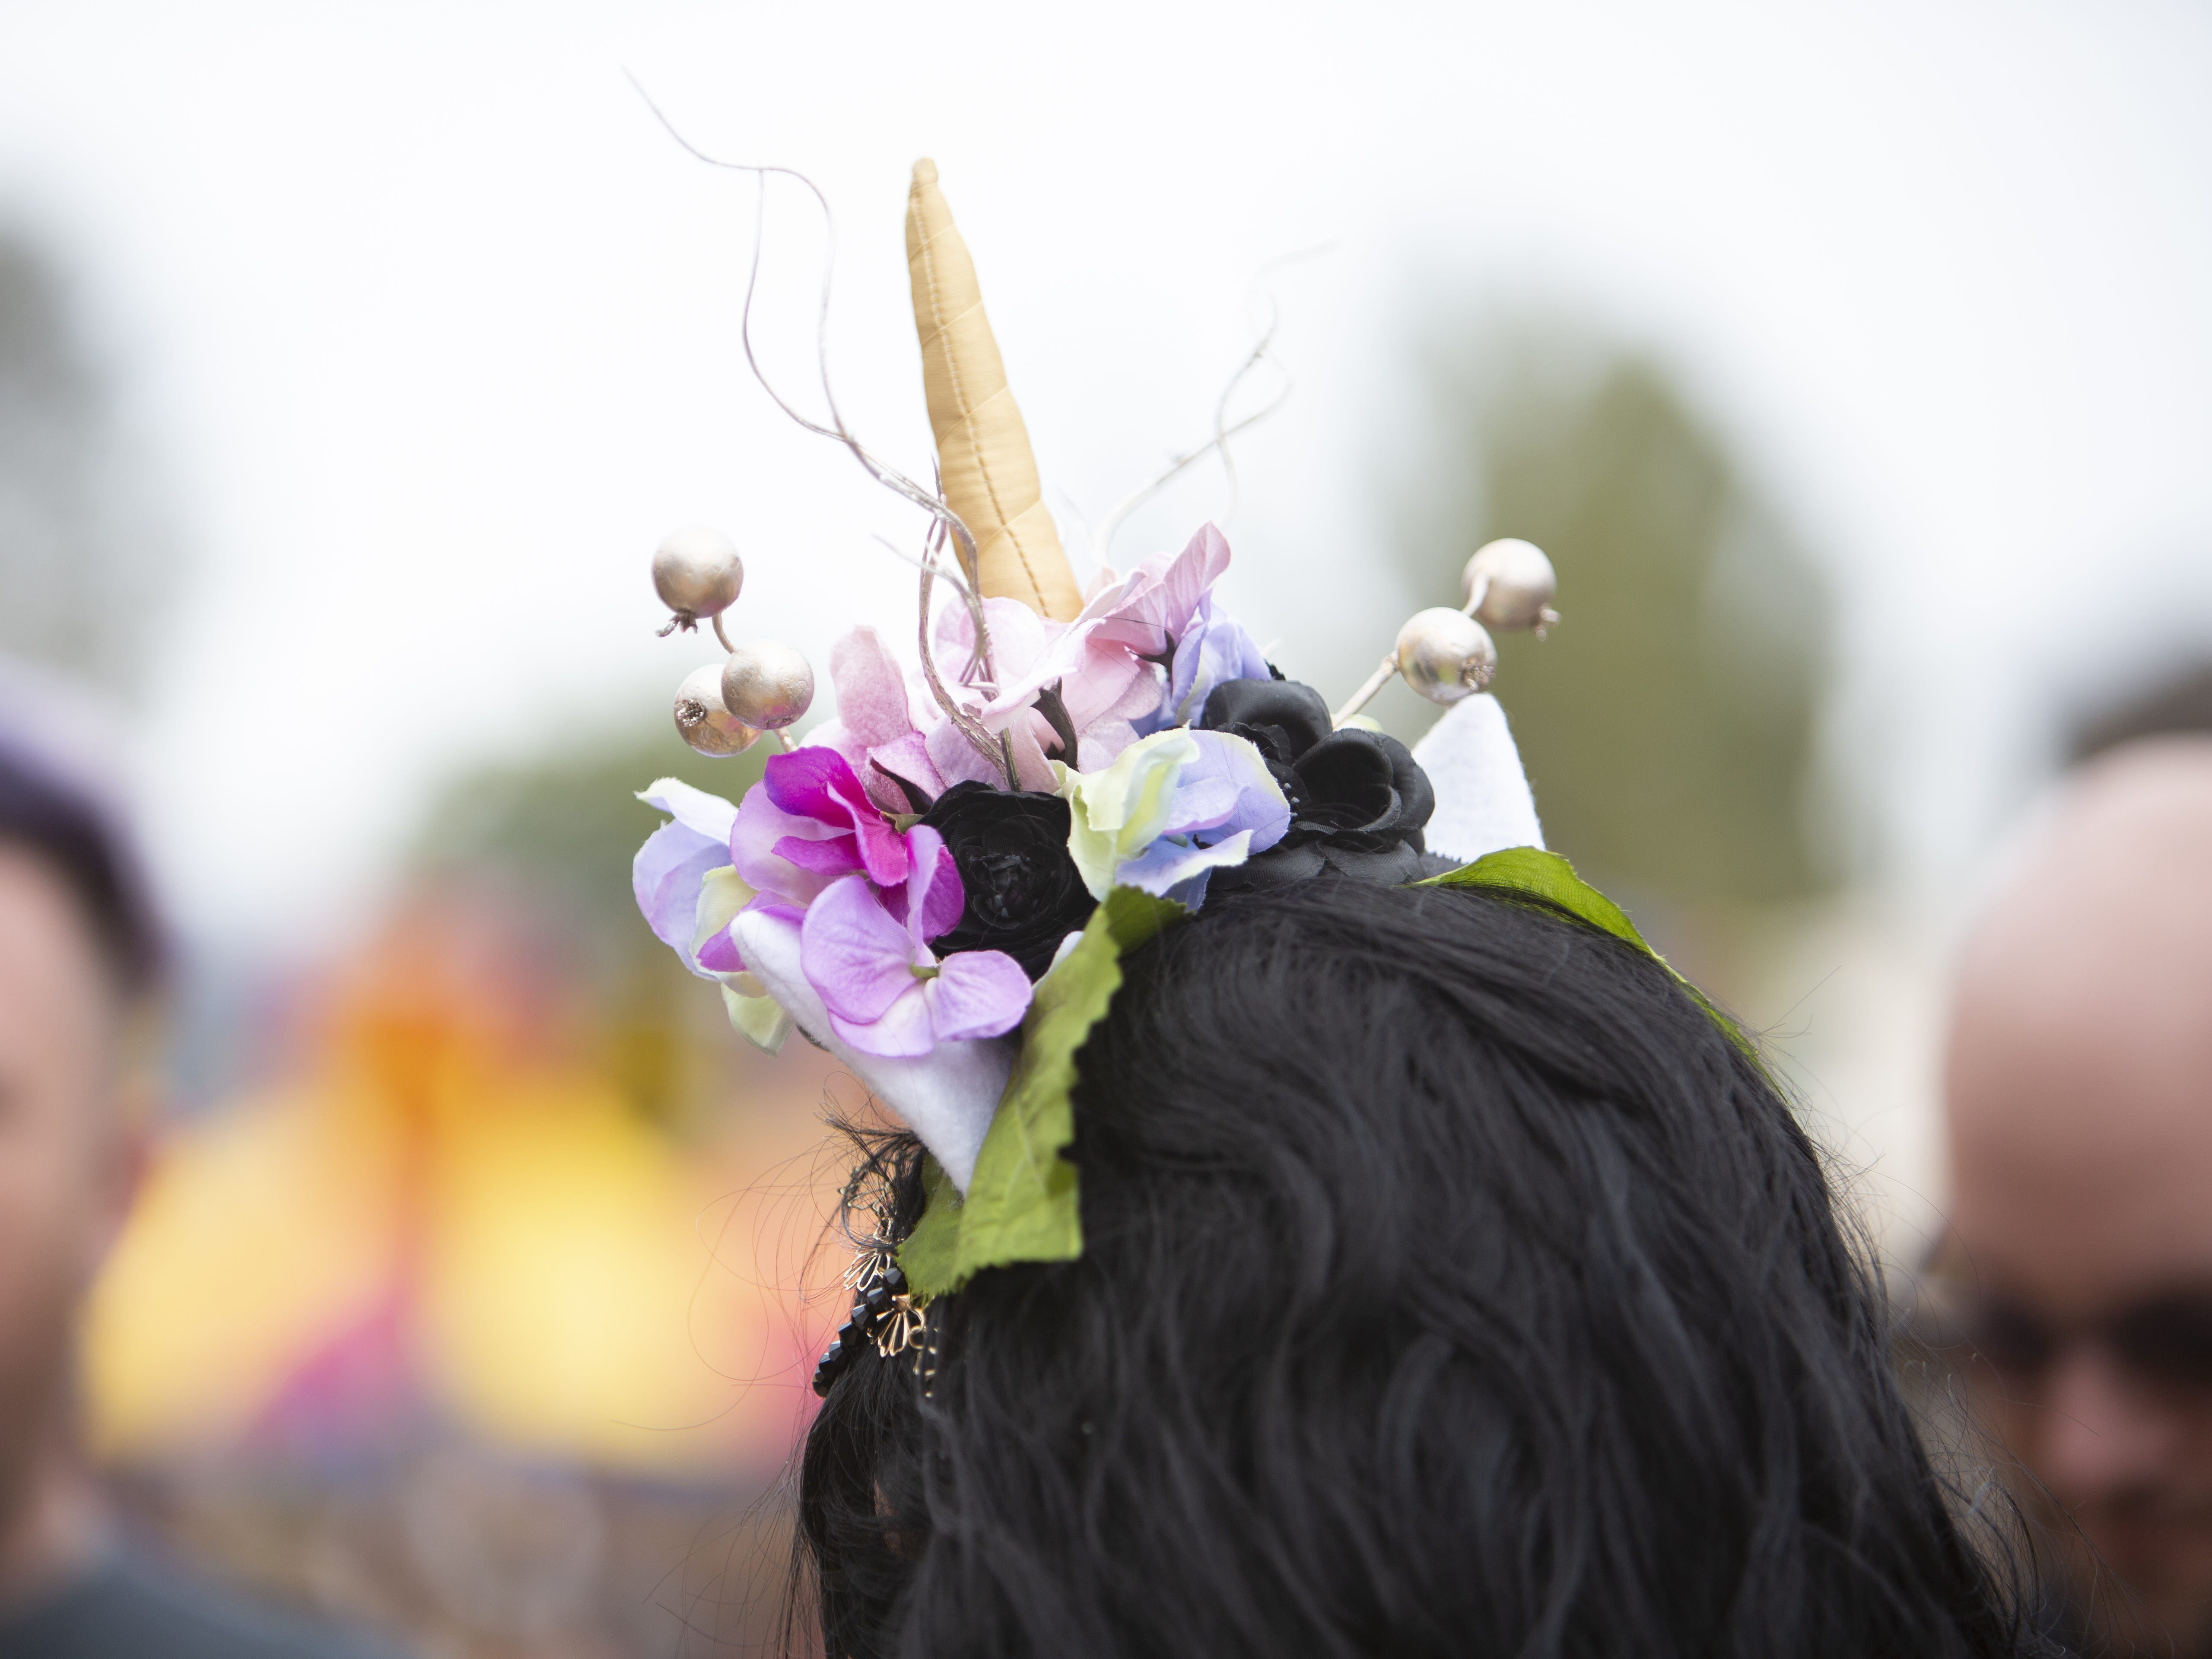 A woman pins a unicorn decoration in her hair at the Arizona Renaissance Festival 2019 on Feb. 9, 2019 in Gold Canyon, Ariz.